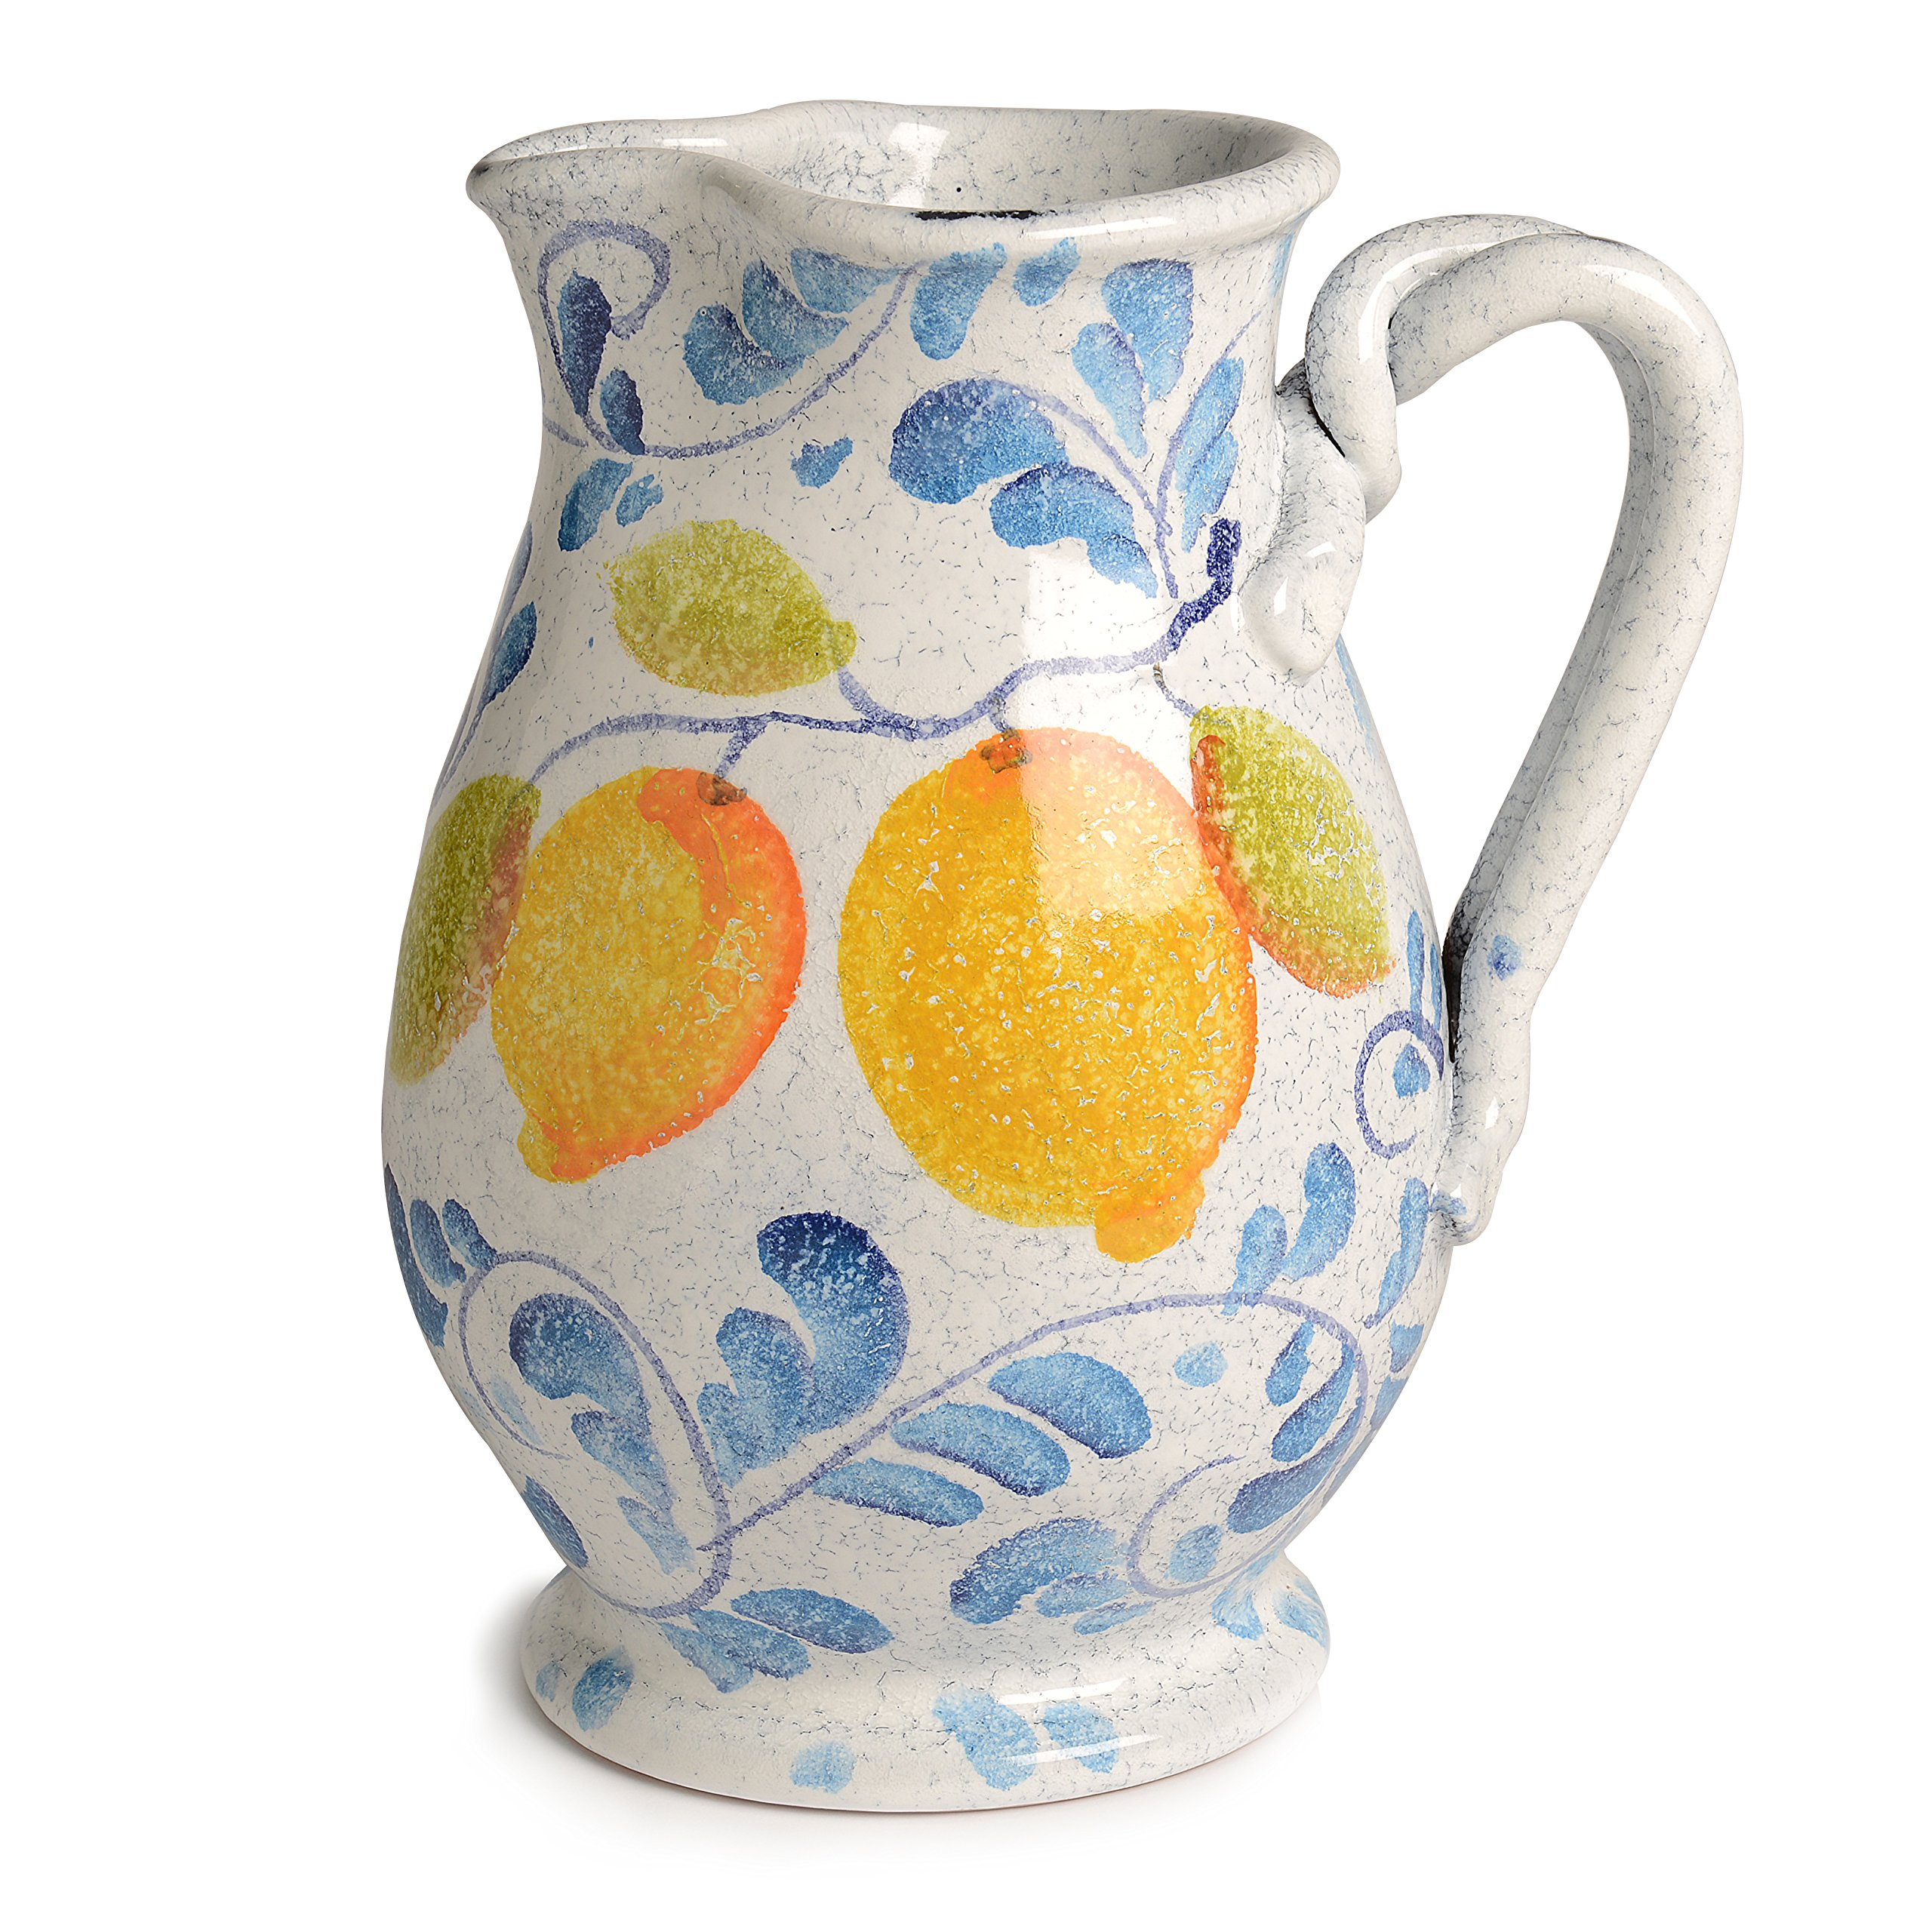 Italian Dinnerware - Handmade in Italy from our Amalfi Collection - Pitcher